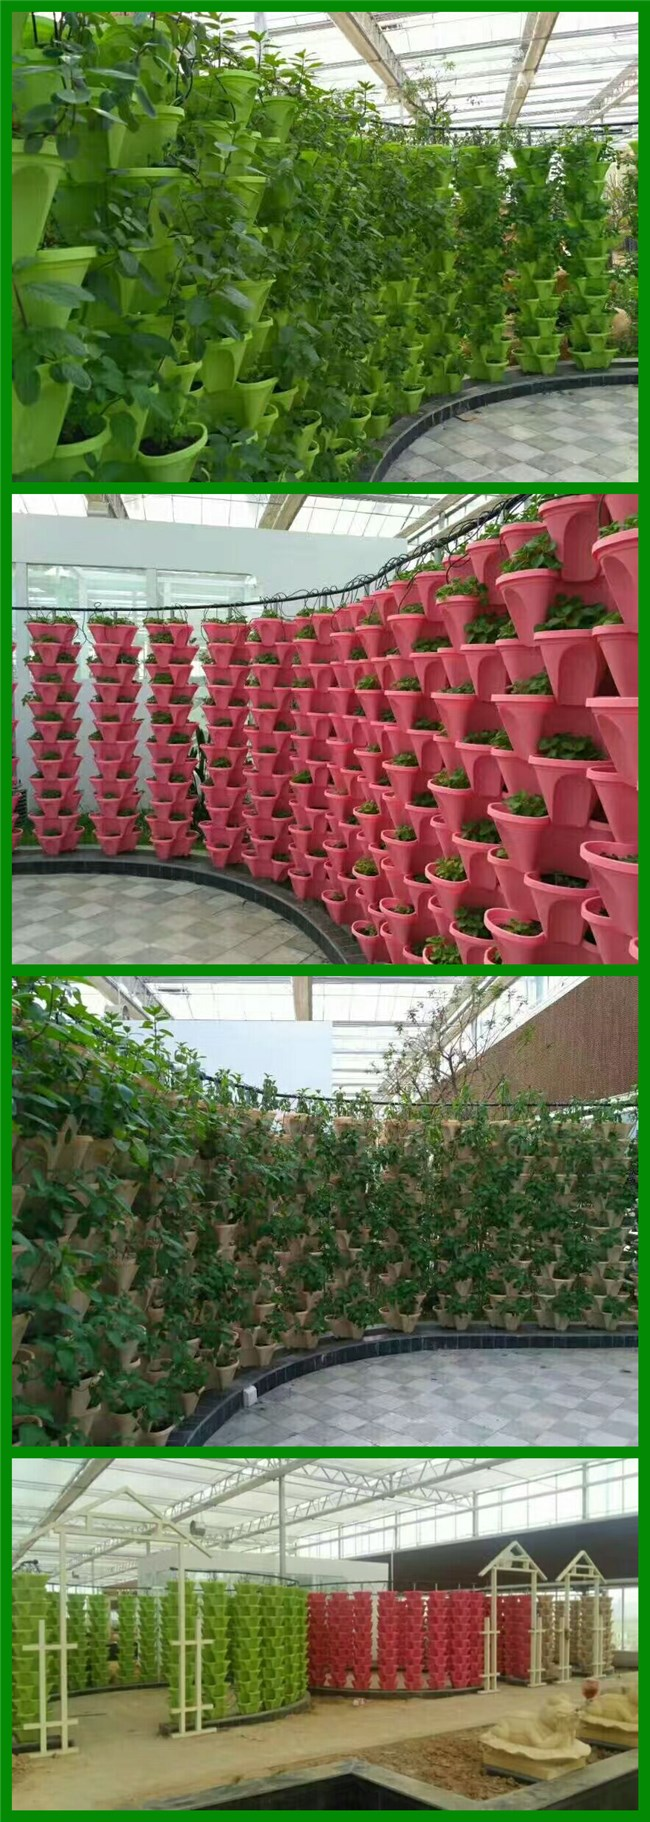 Factory hot sales Dutch Bucket for Greenhouse hydroponic planting system